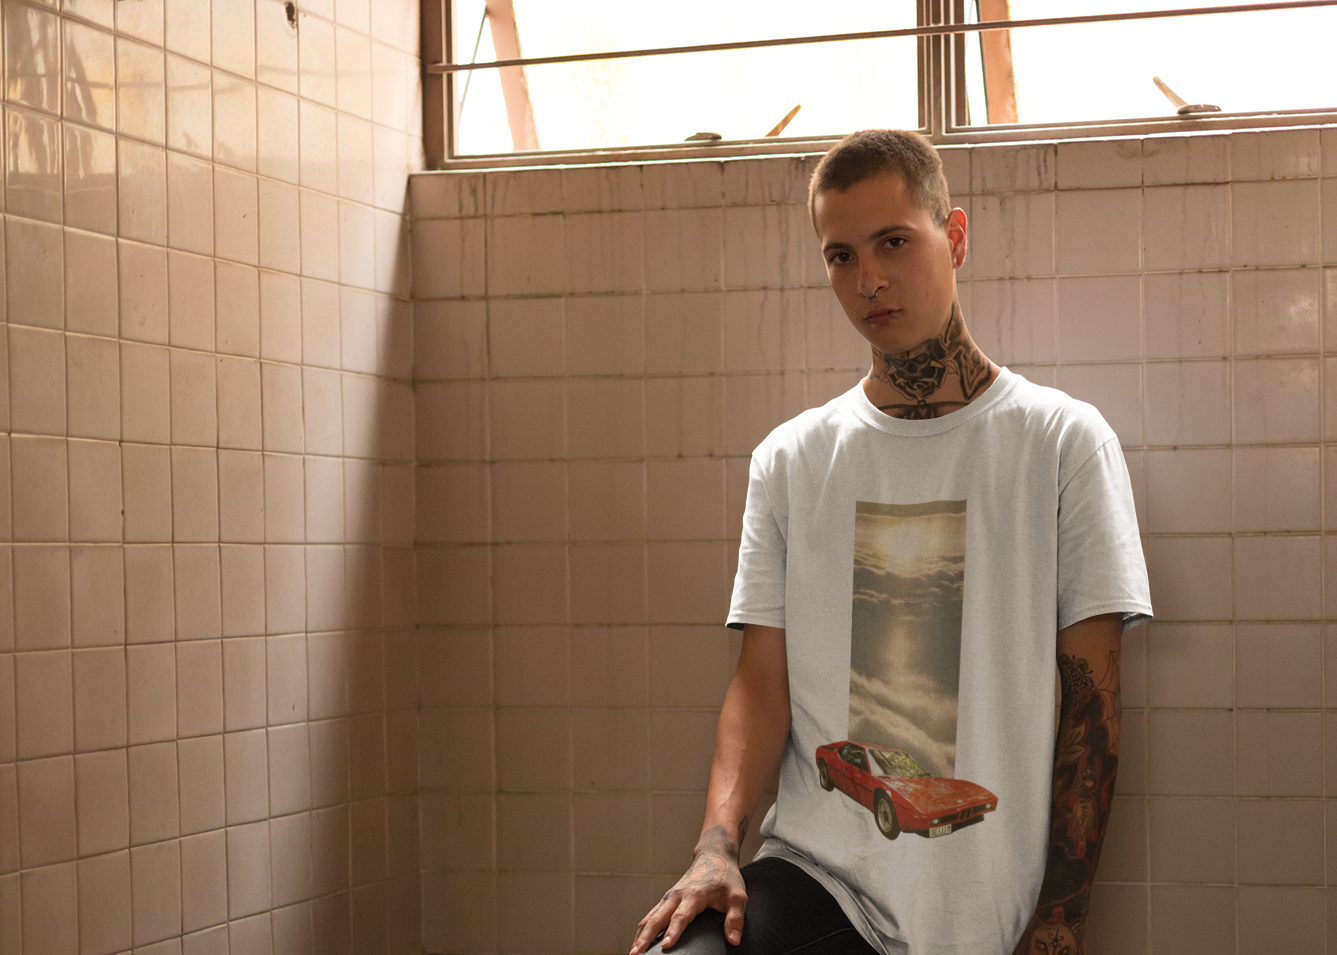 t-shirt-mockup-of-a-punk-man-with-tattoos-leaning-against-a-tiles-wall-23461 copy.png